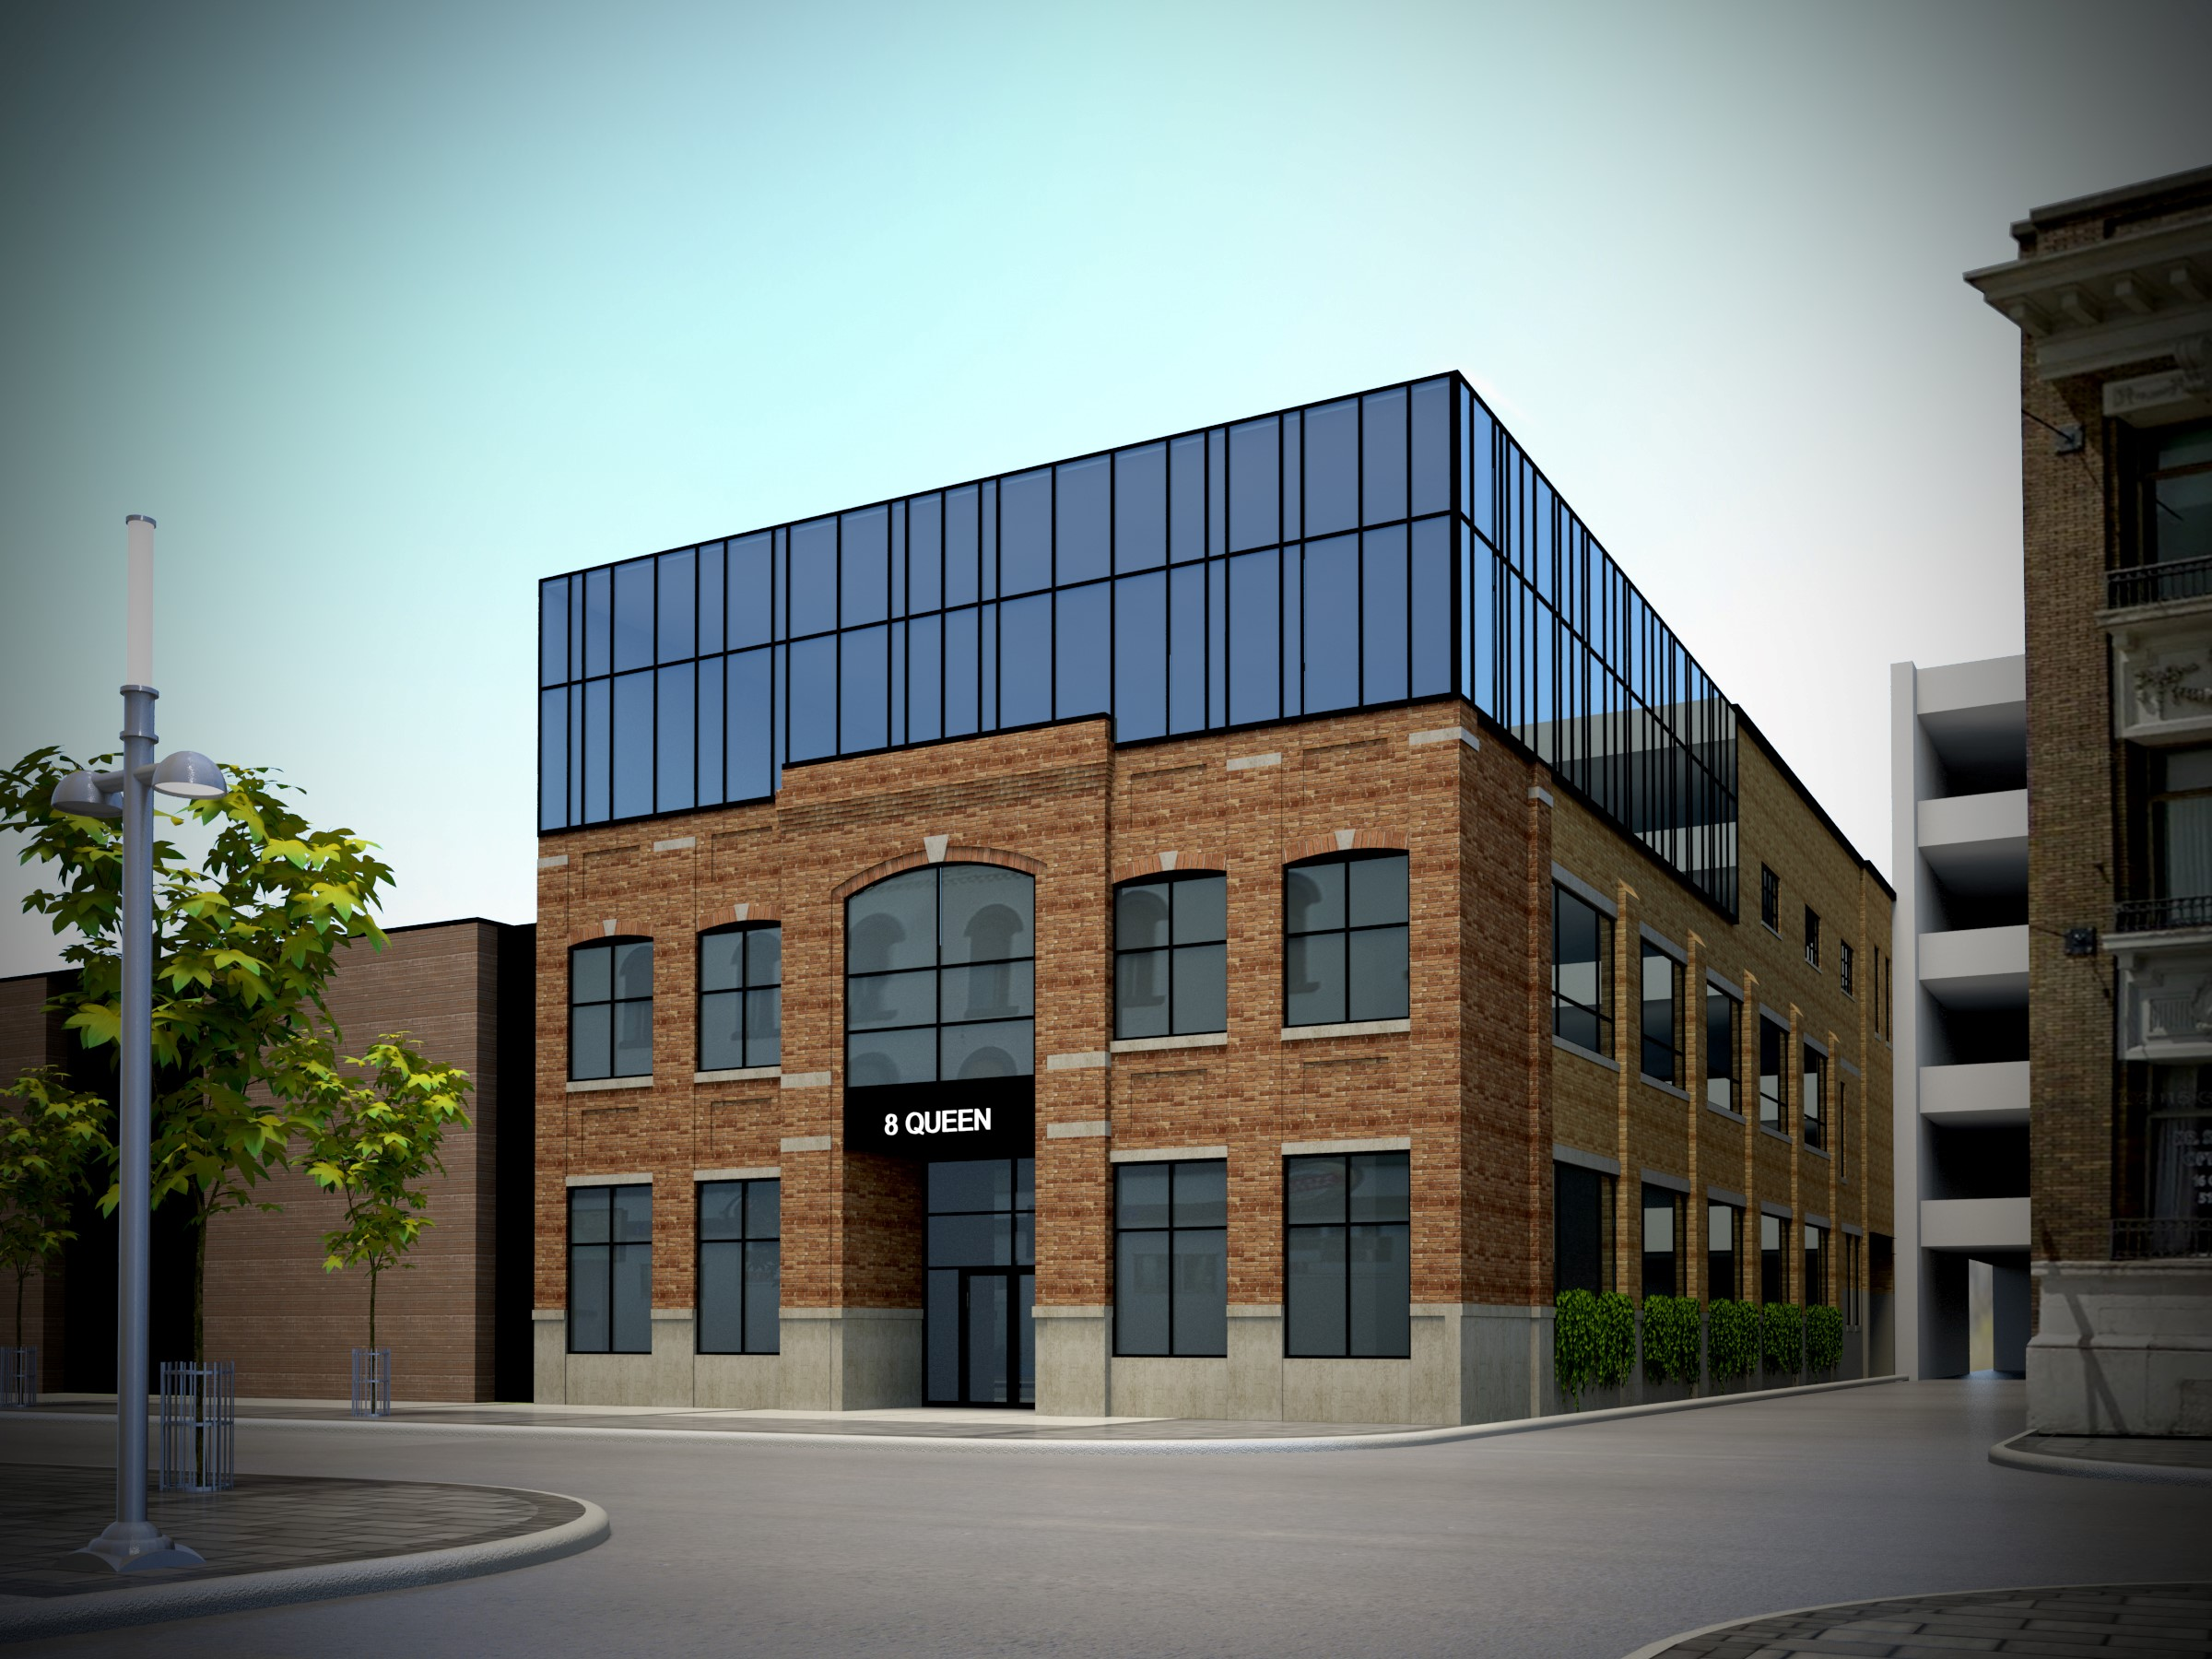 Voisin Capital and Brick by Brick Developments Acquire 8 Queen